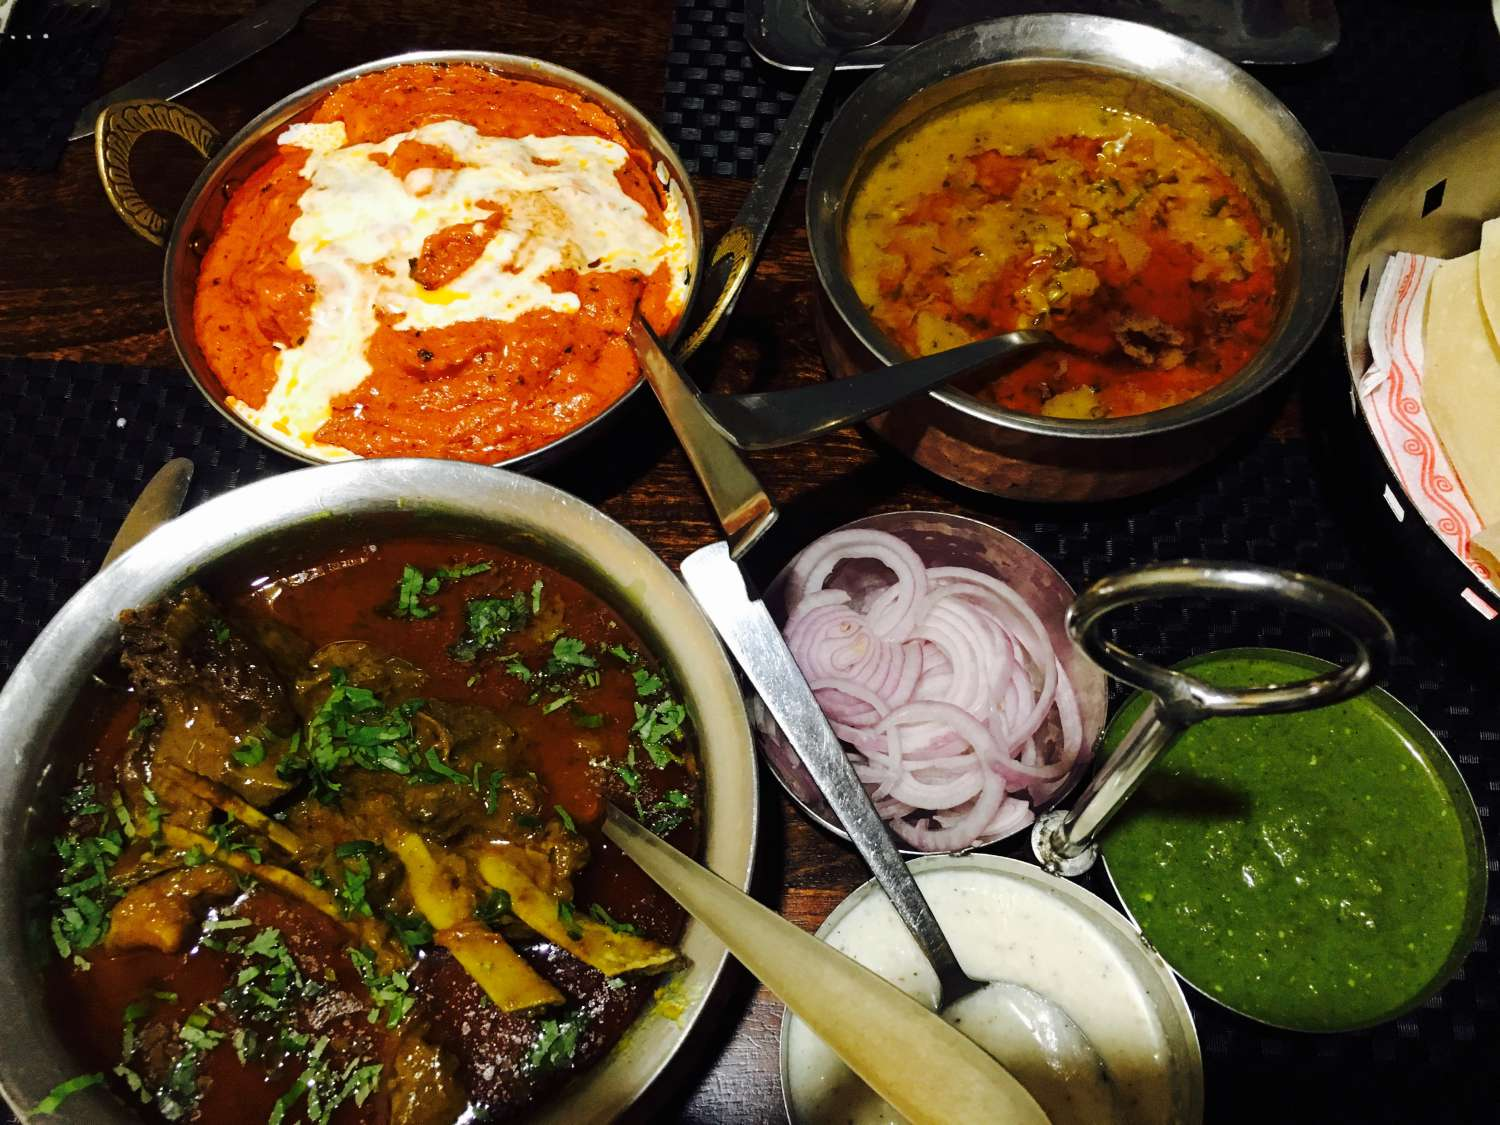 Jaipur Food Tour - Main Course